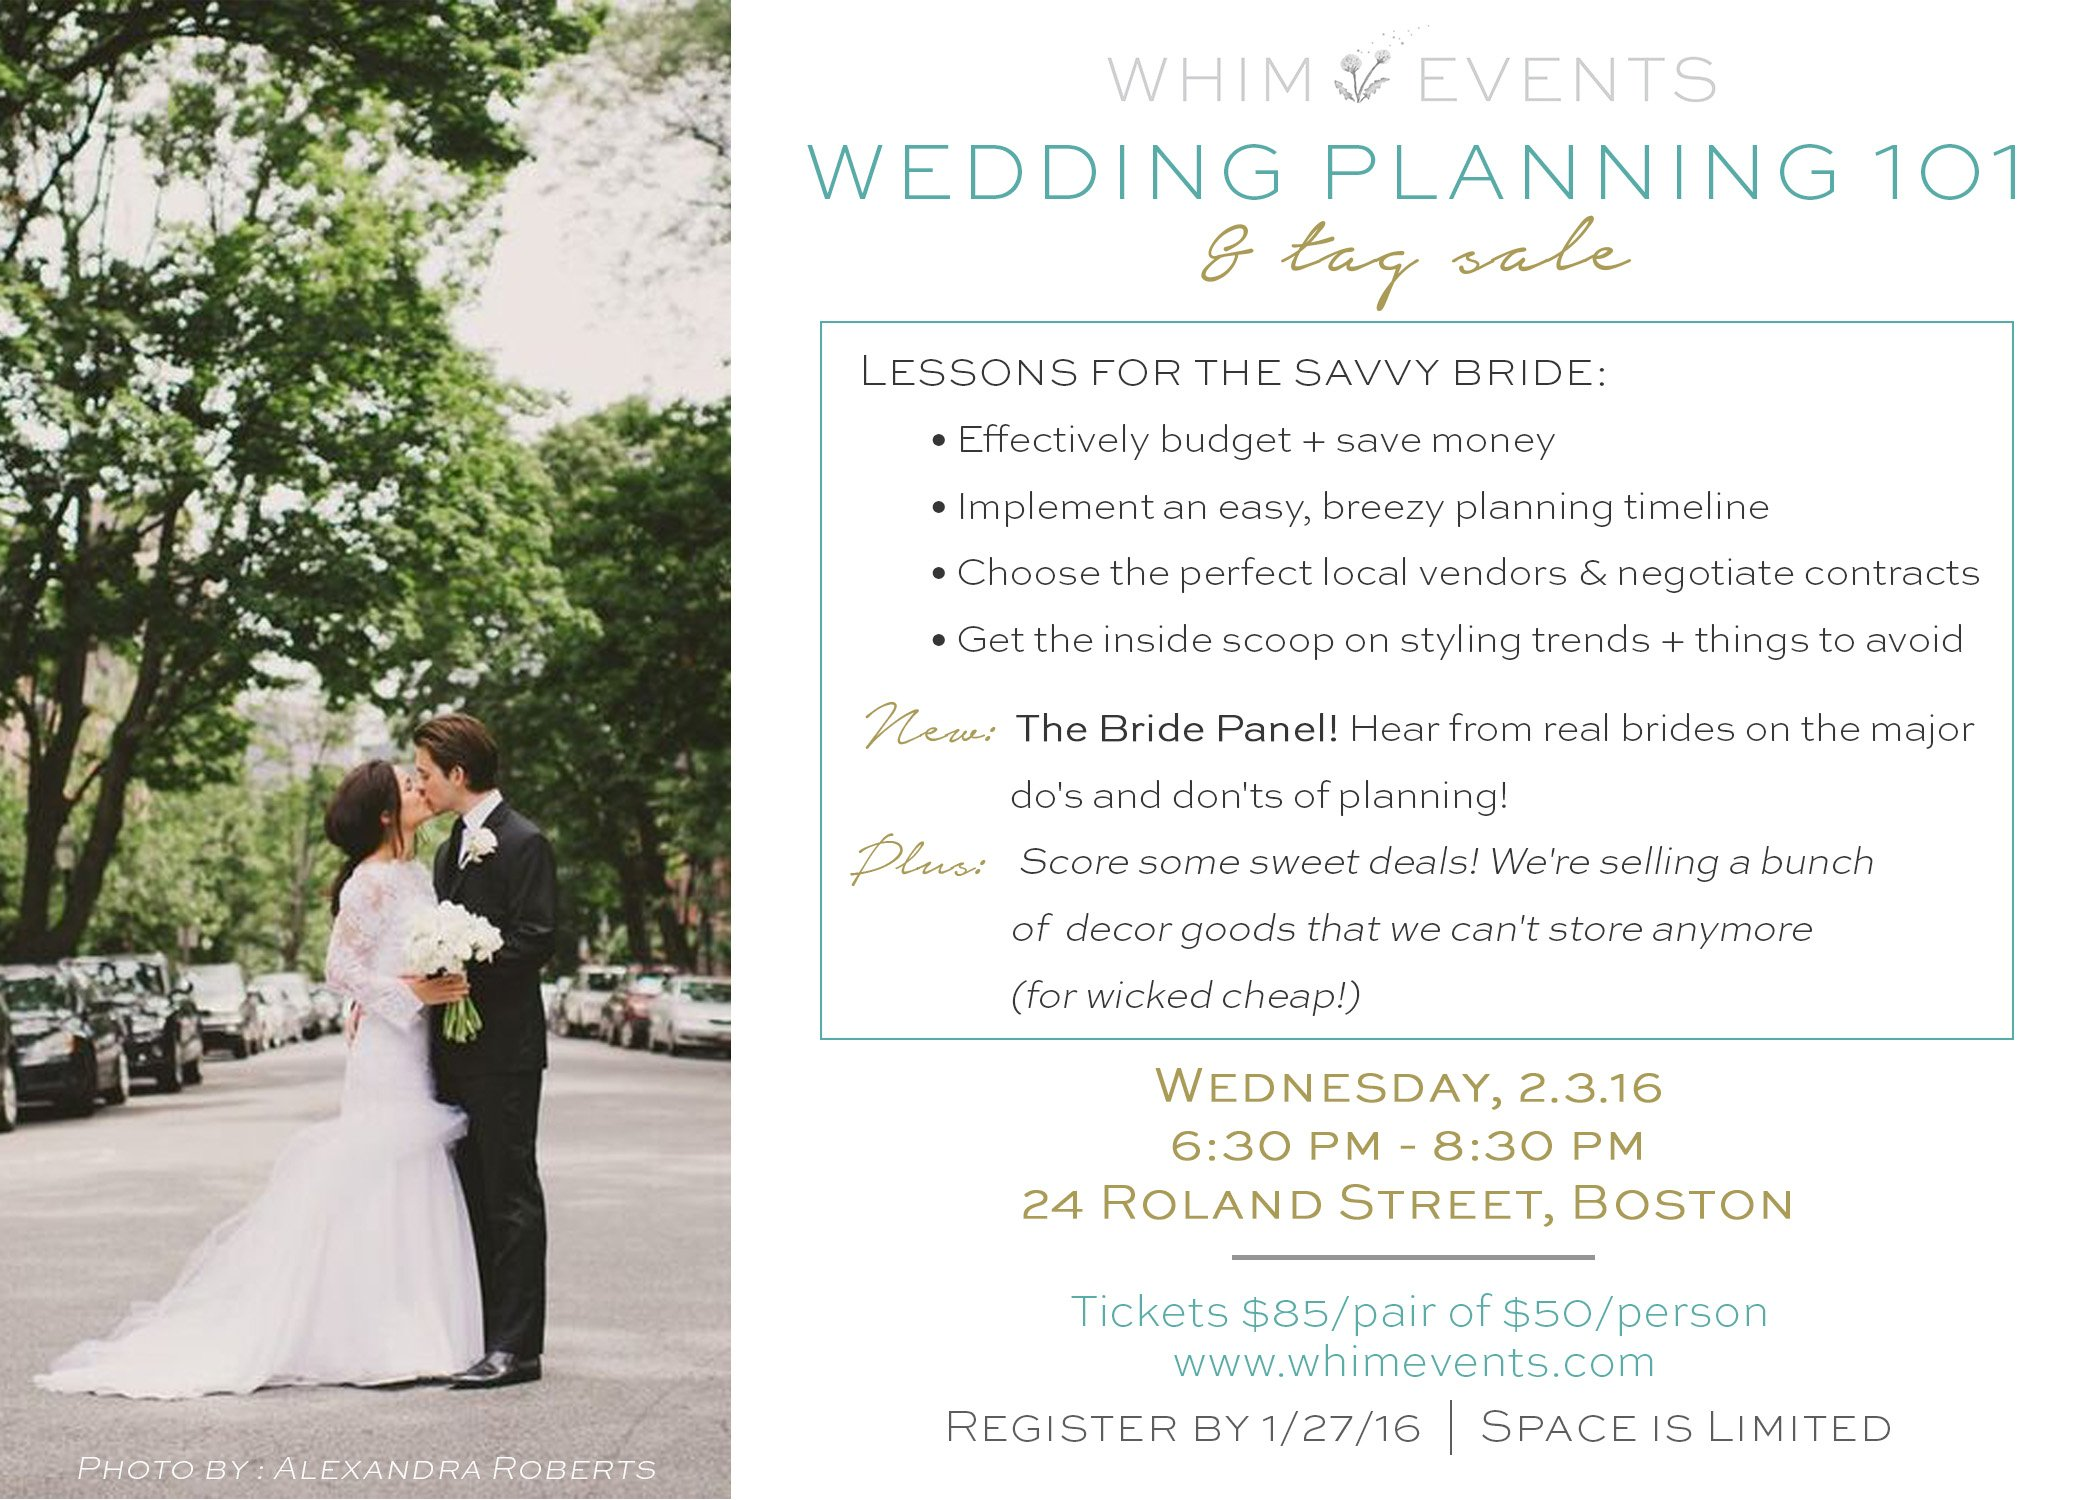 Engagement Season Is Here And It Has Been A Blast To Chat With New S Beginning Plan Their Boston Weddings But Honestly The Gest Complaint We